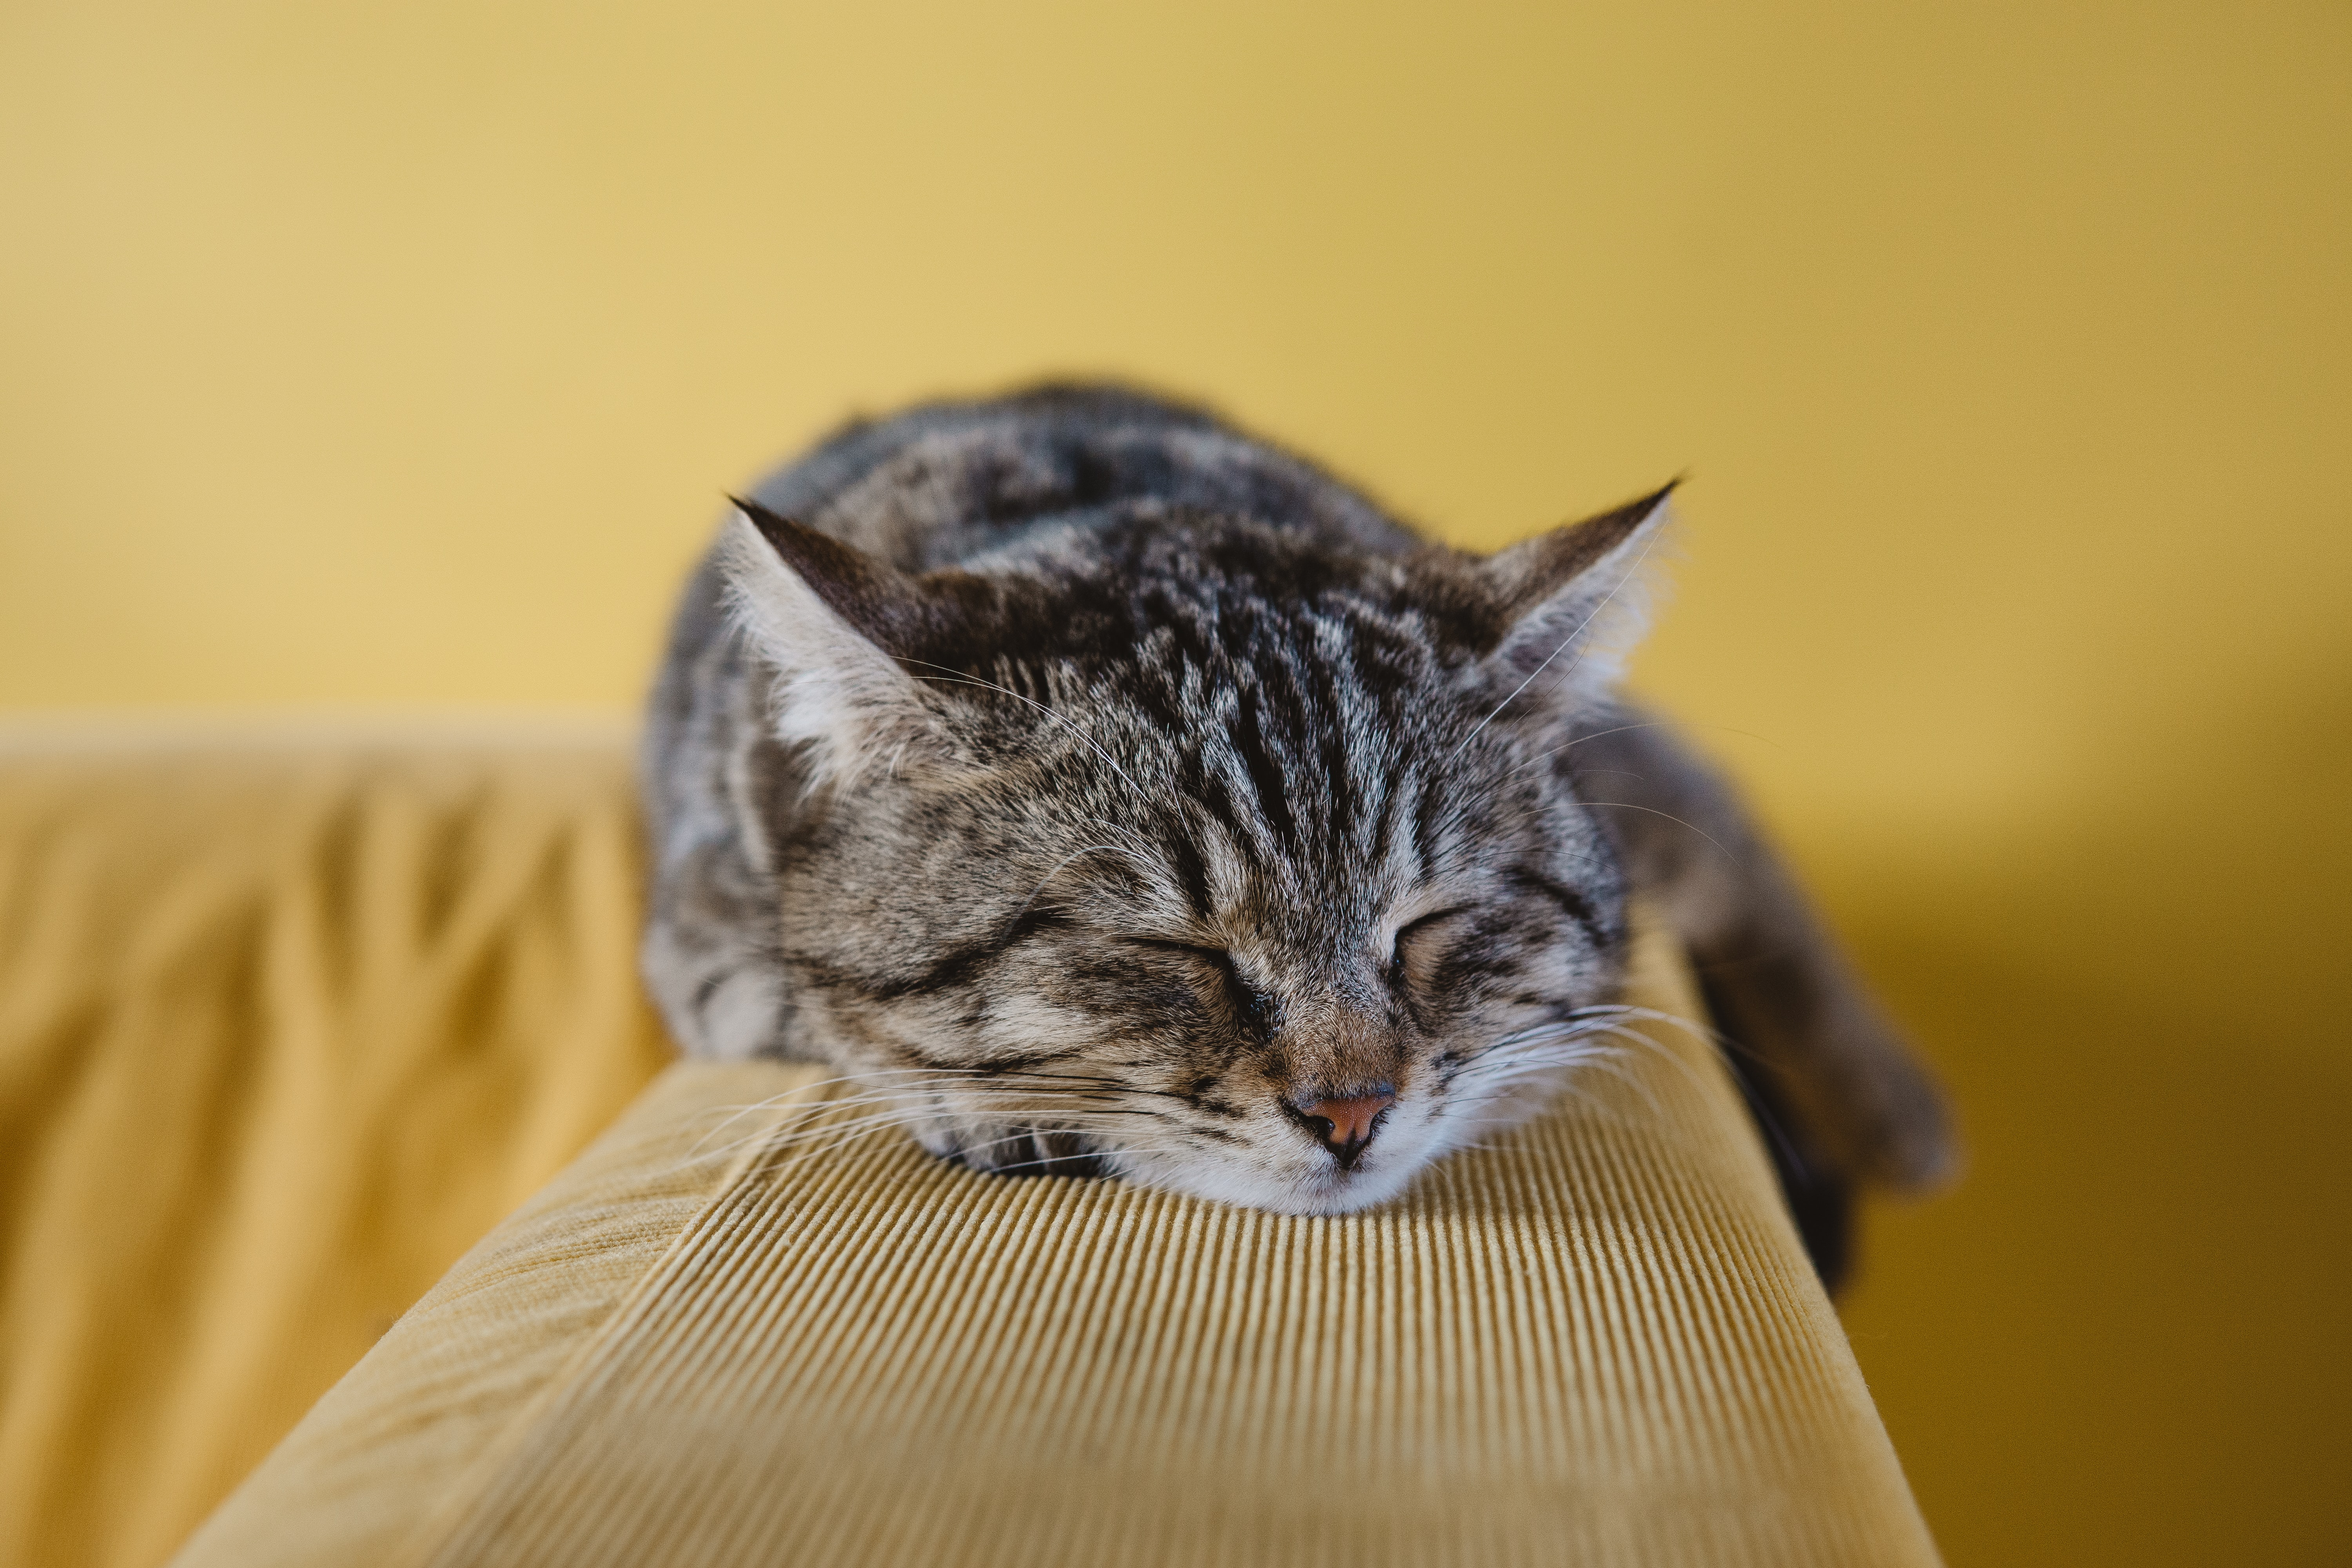 shallow focus photography of brown tabby kitten on couch